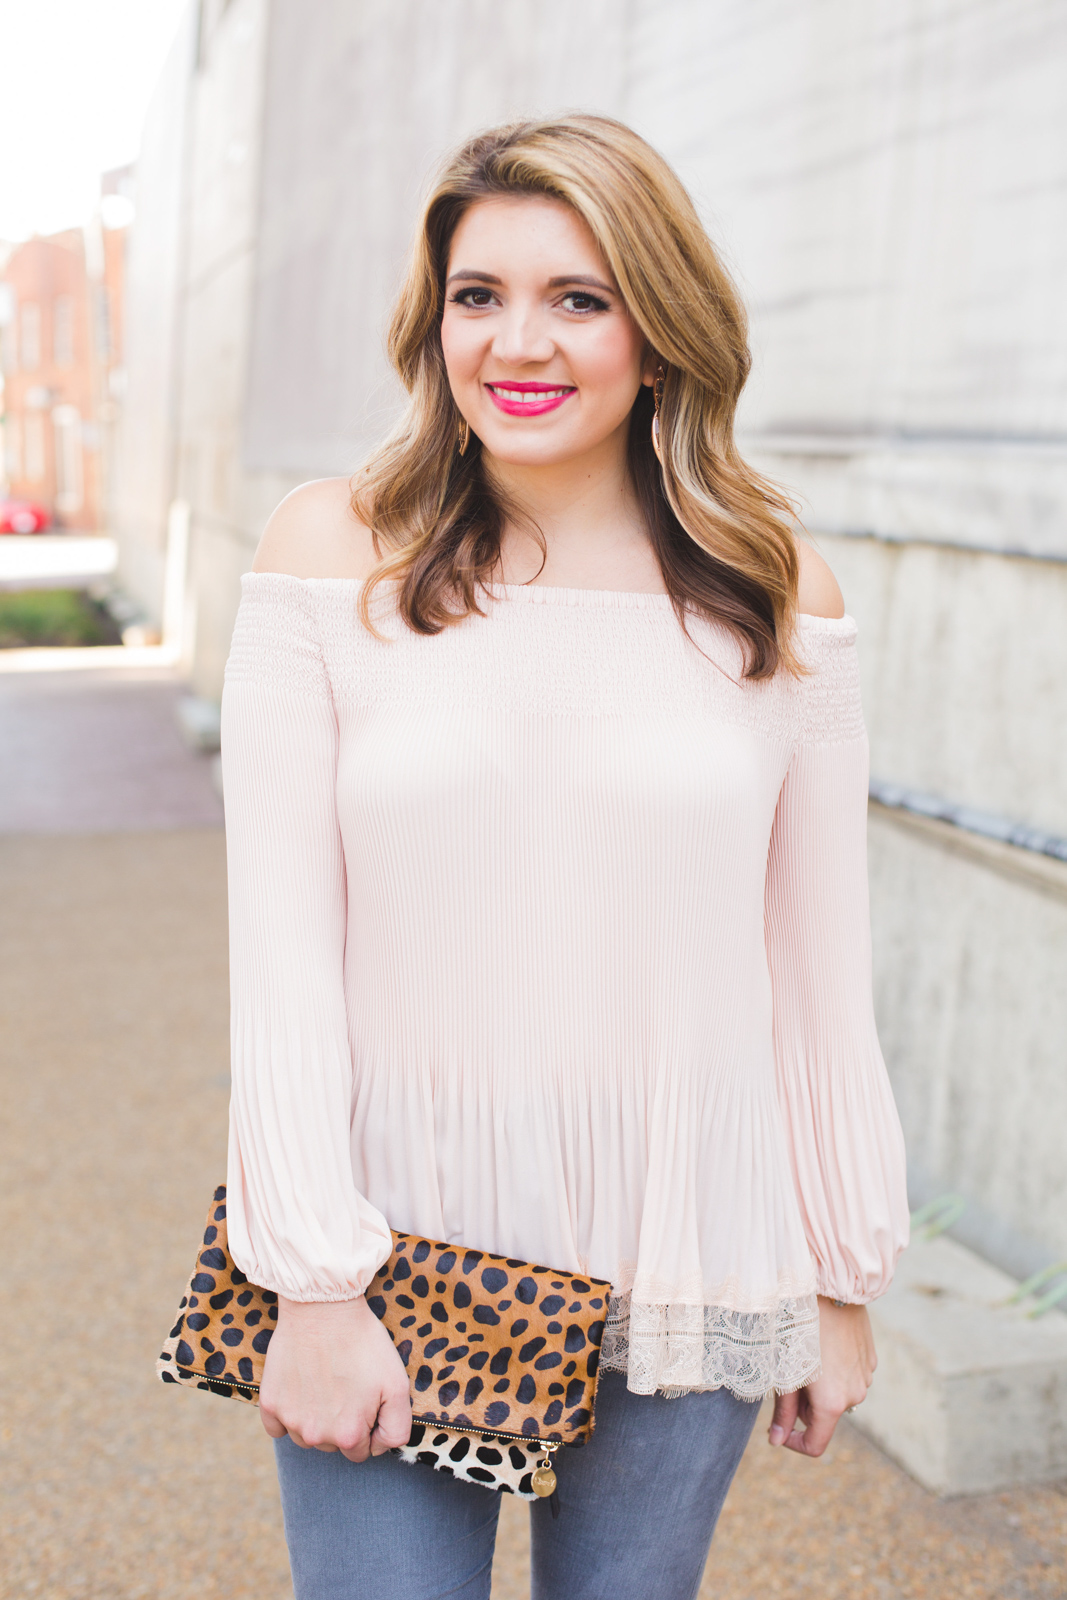 spring off shoulder top outfit - Click through for more cute Spring outfits or to shop this look! www.bylaurenm.com